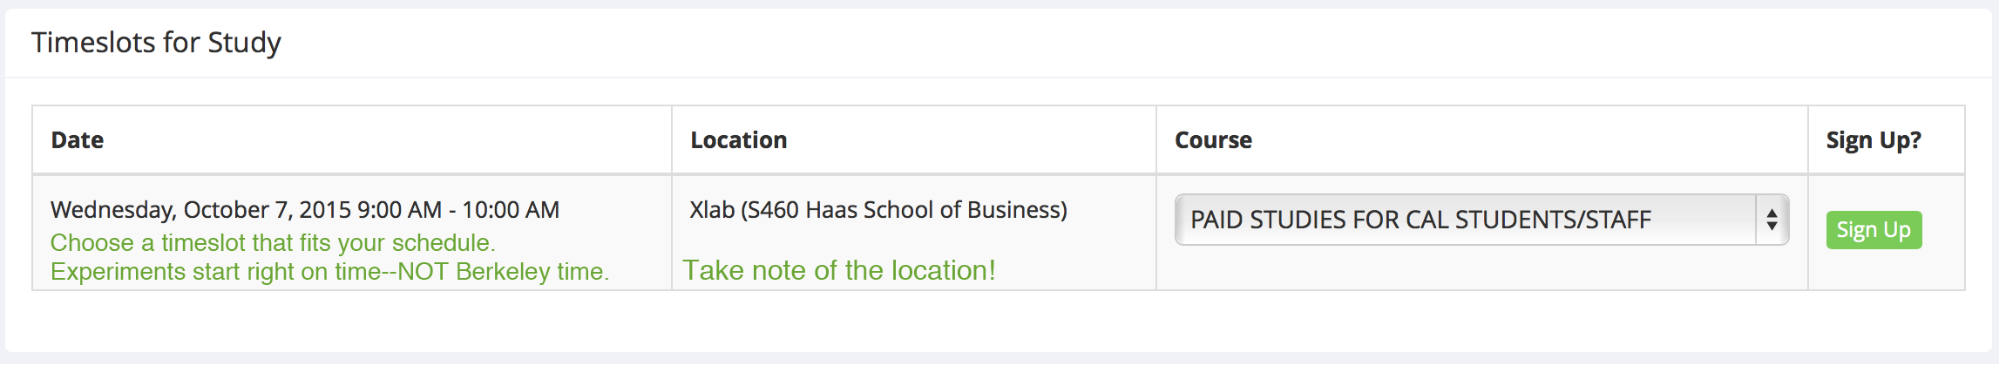 Screenshot of Timeslot for Study page on Sona Systems; tells user when session times are for a particilar study.